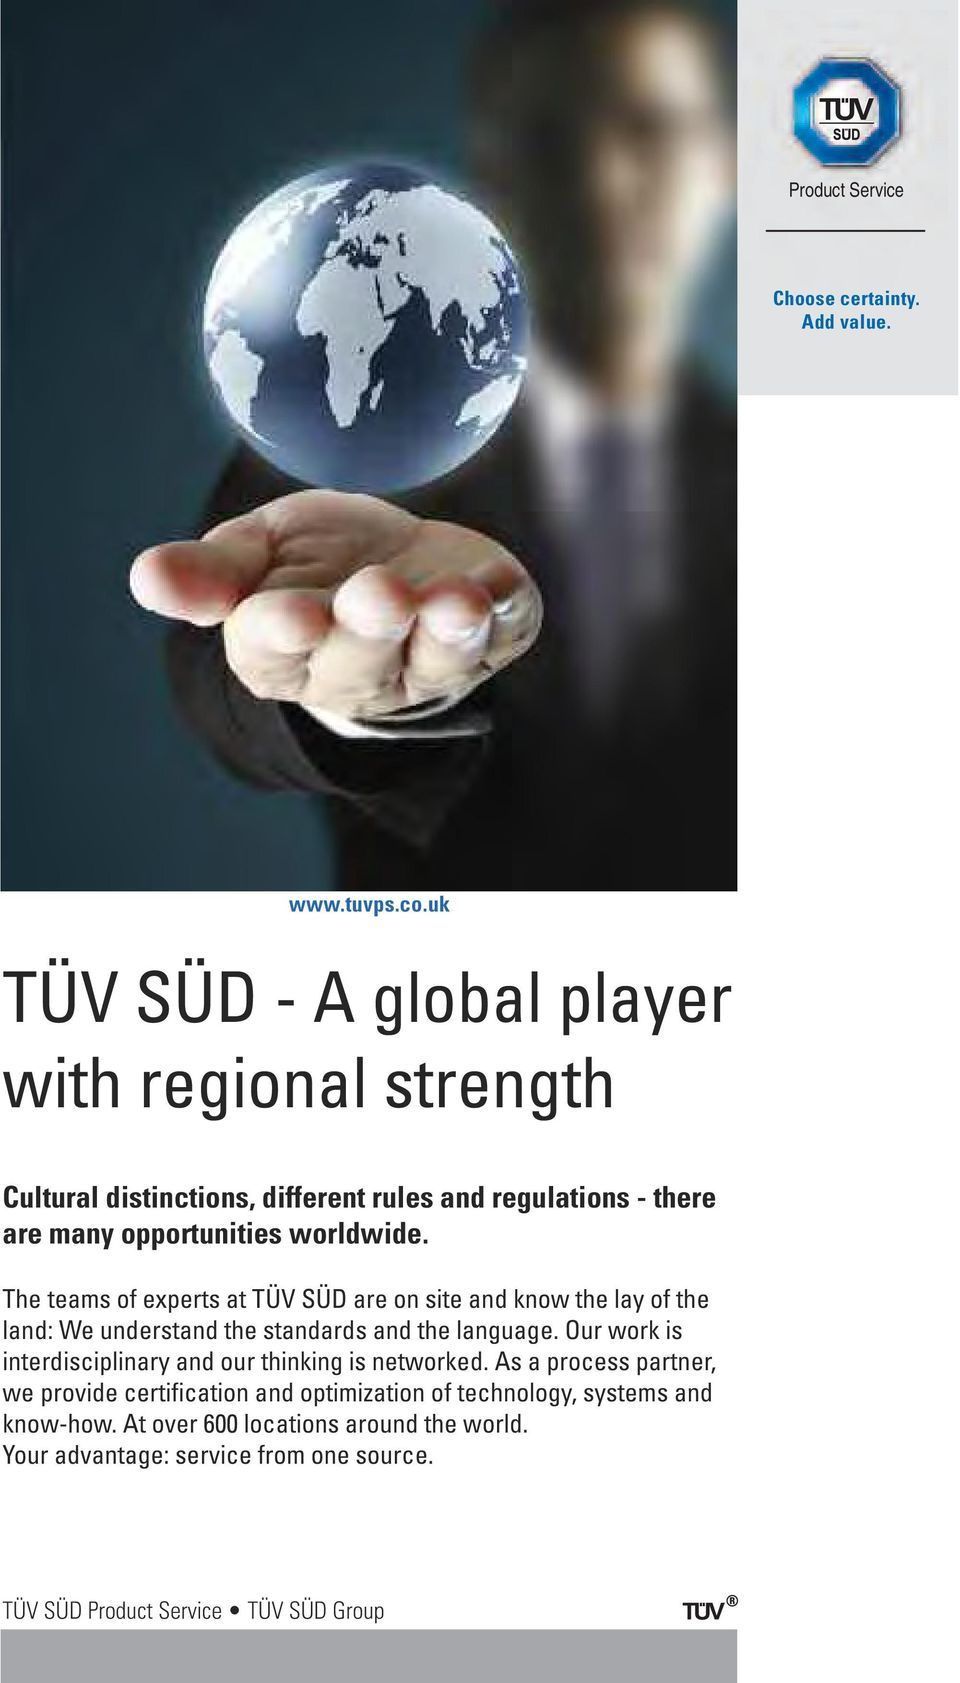 The teams of experts at TÜV SÜD are on site and know the lay of the land: We understand the standards and the language.